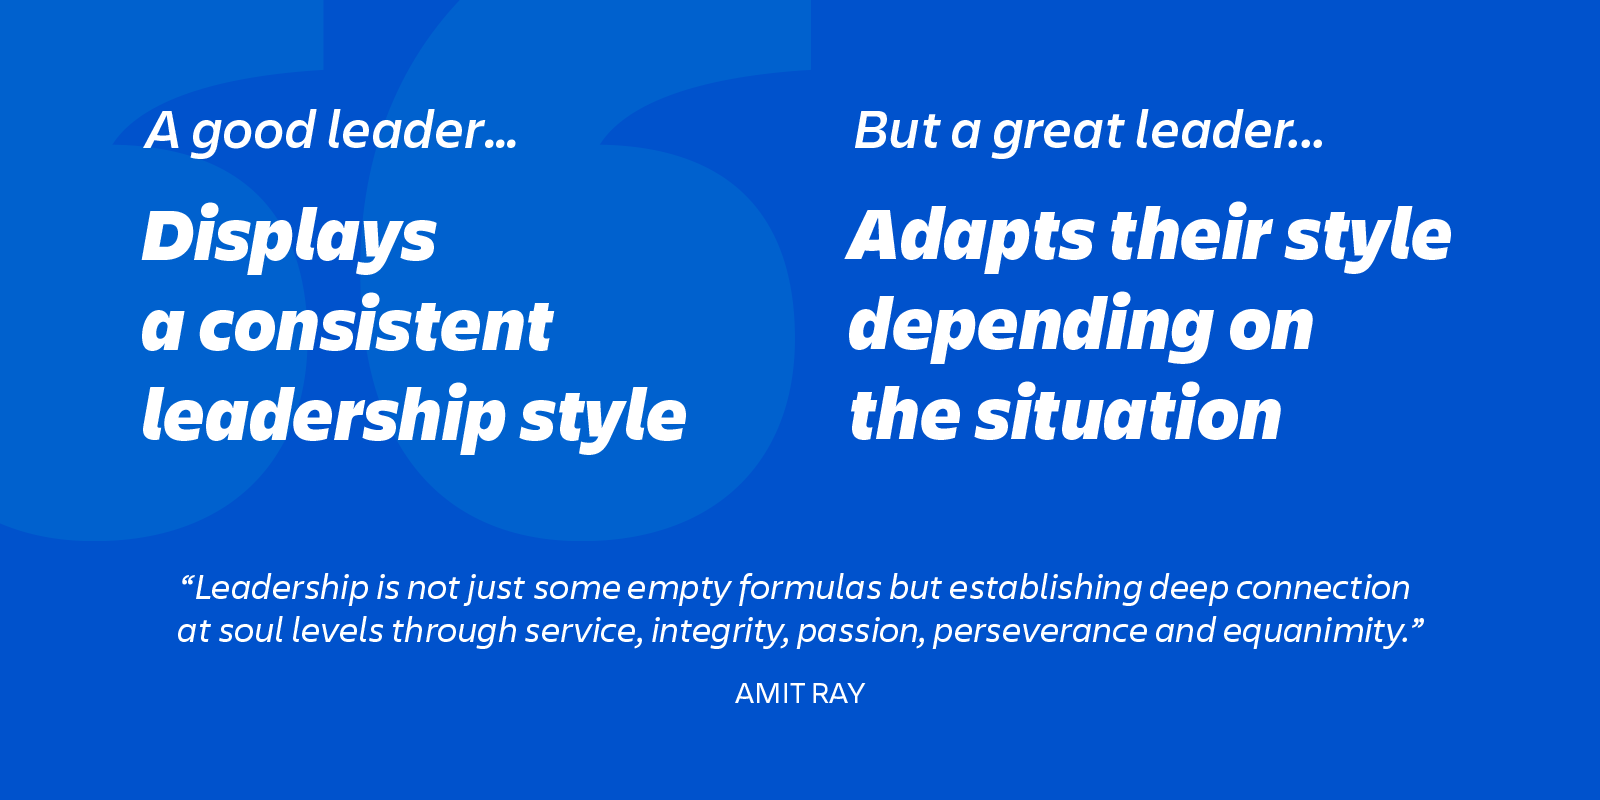 great leaders adapt their style as needed